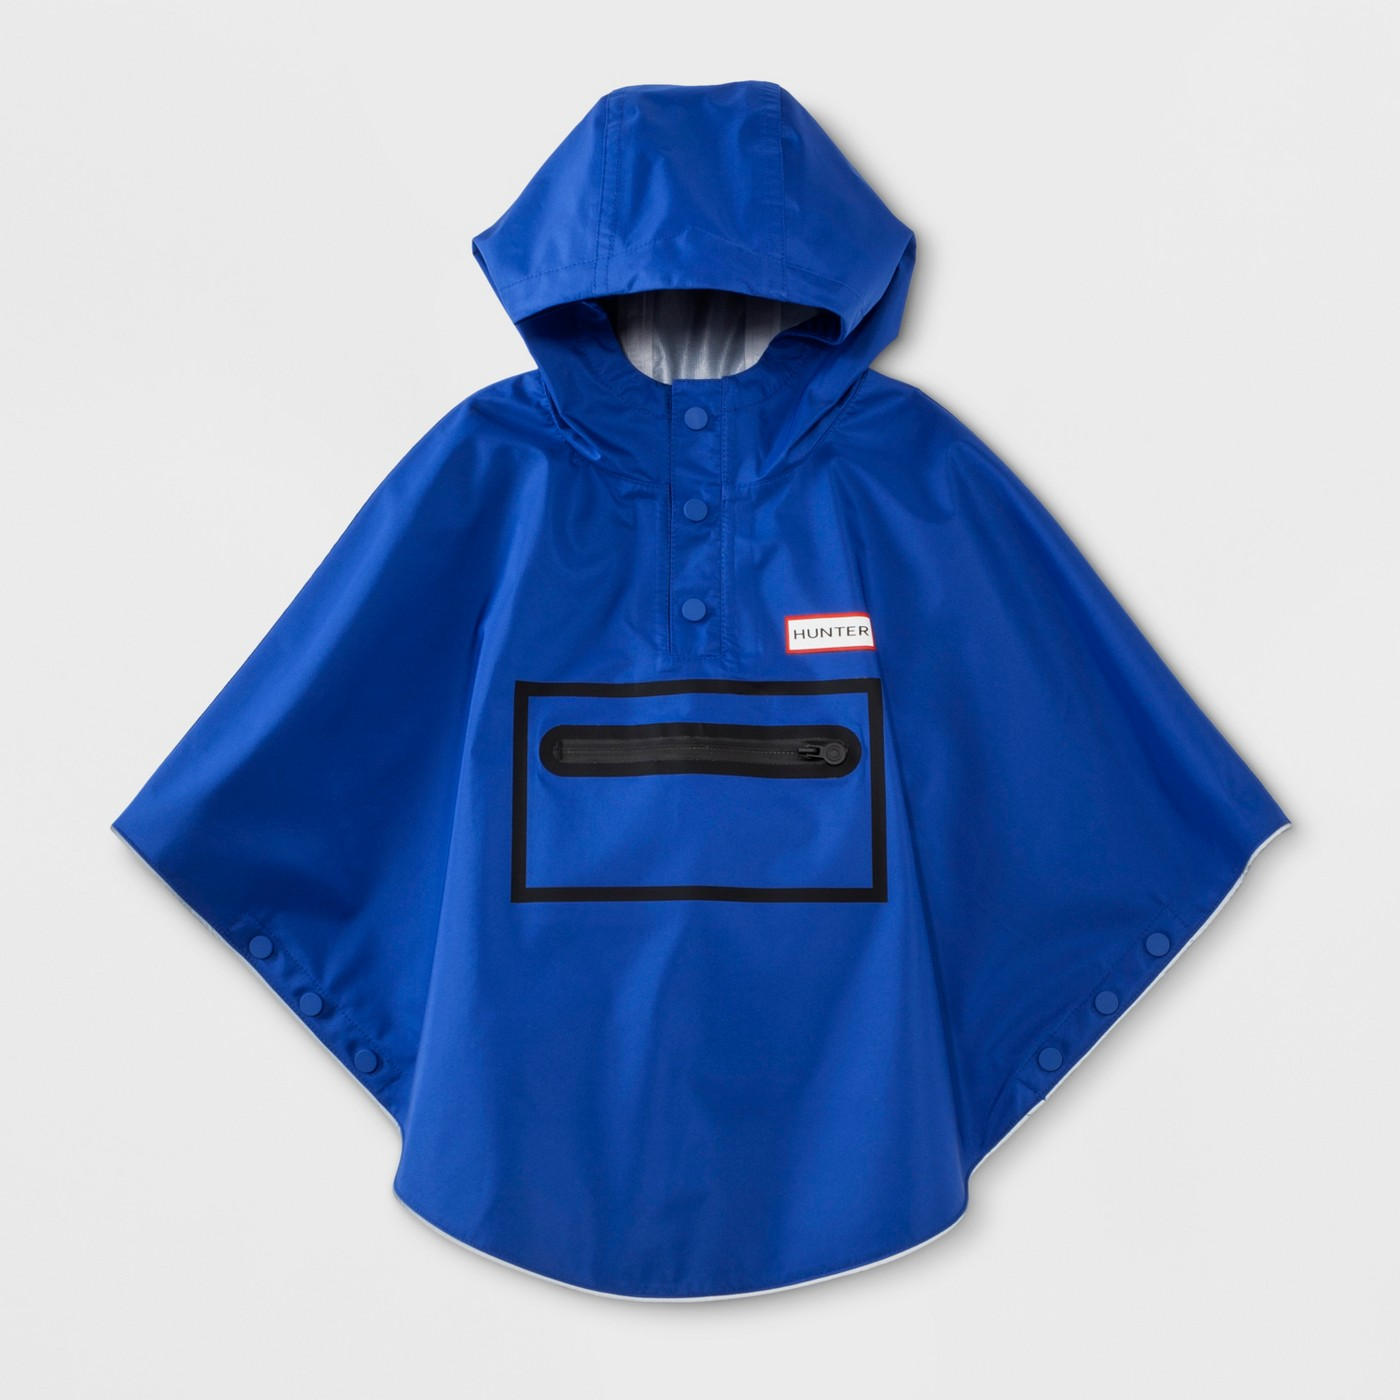 Hunter for Target Toddlers' Waterproof Packable Poncho - Blue - image 1 of 8